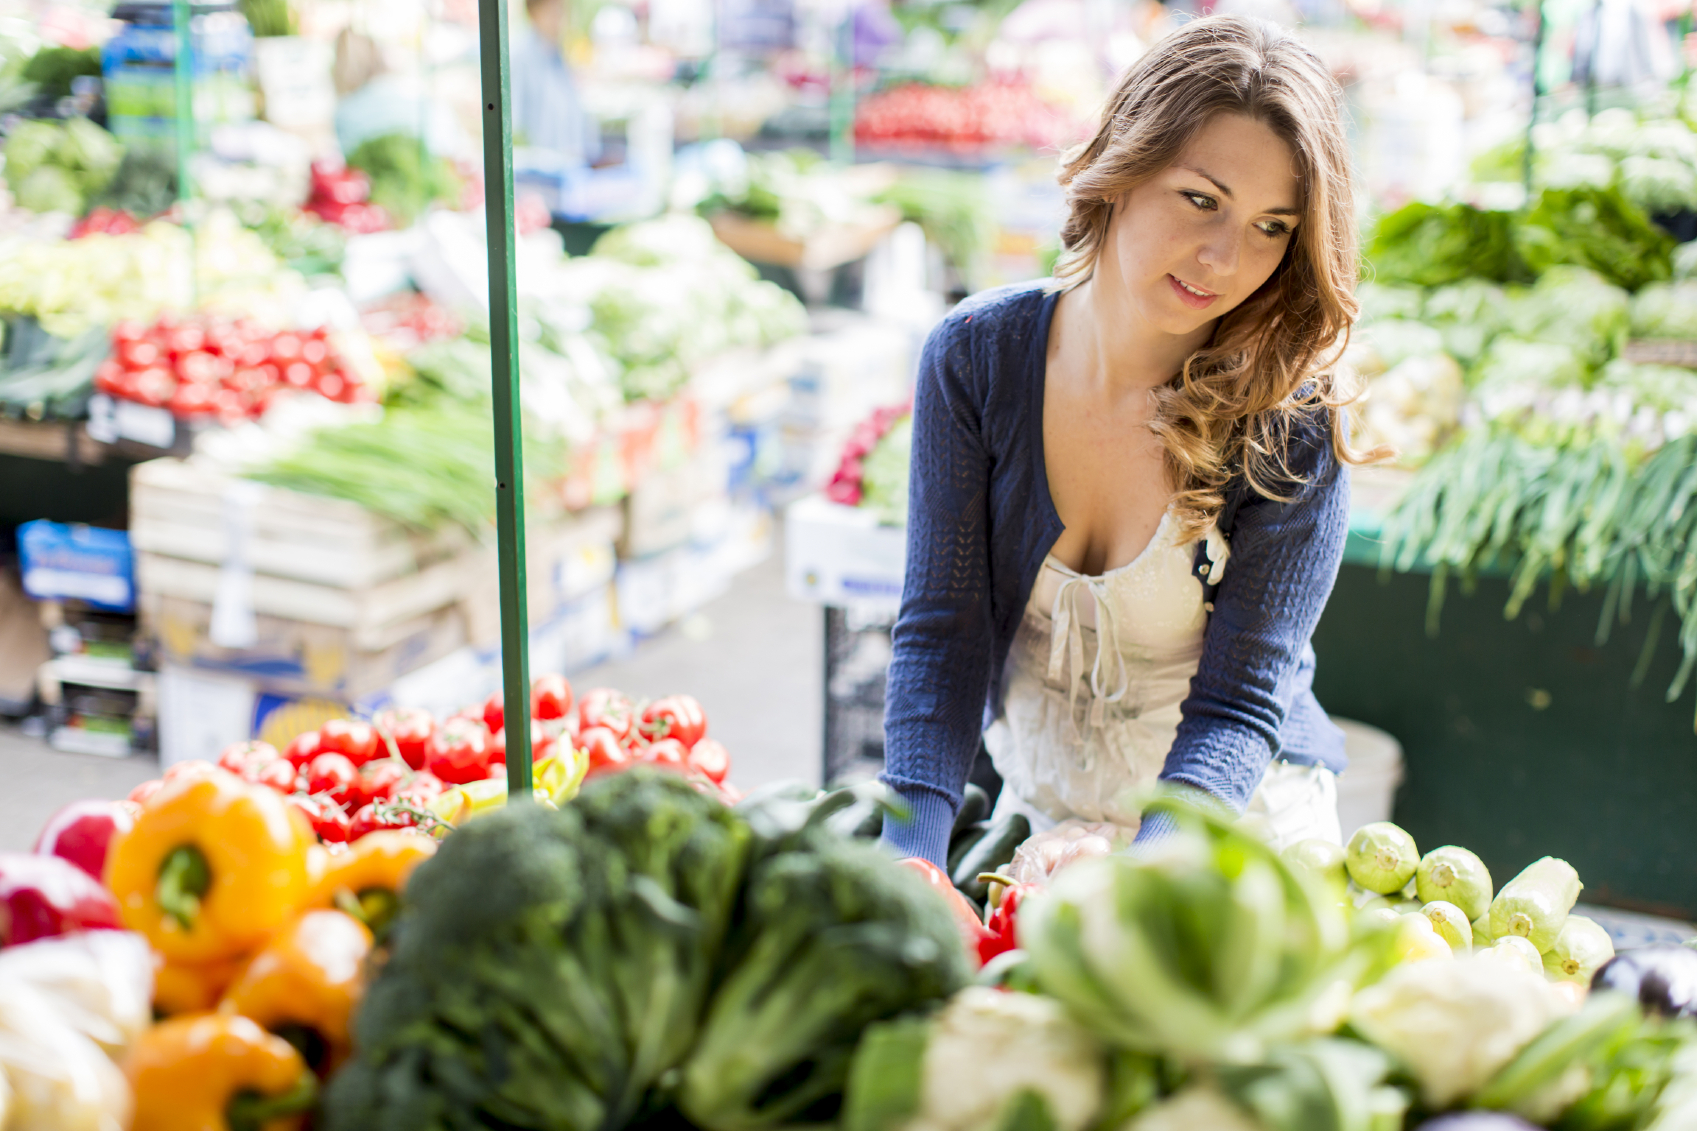 Eating organic isn't about being trendy. It's about what's best for your health. And new research shows that conventional produce doesn't even come close.